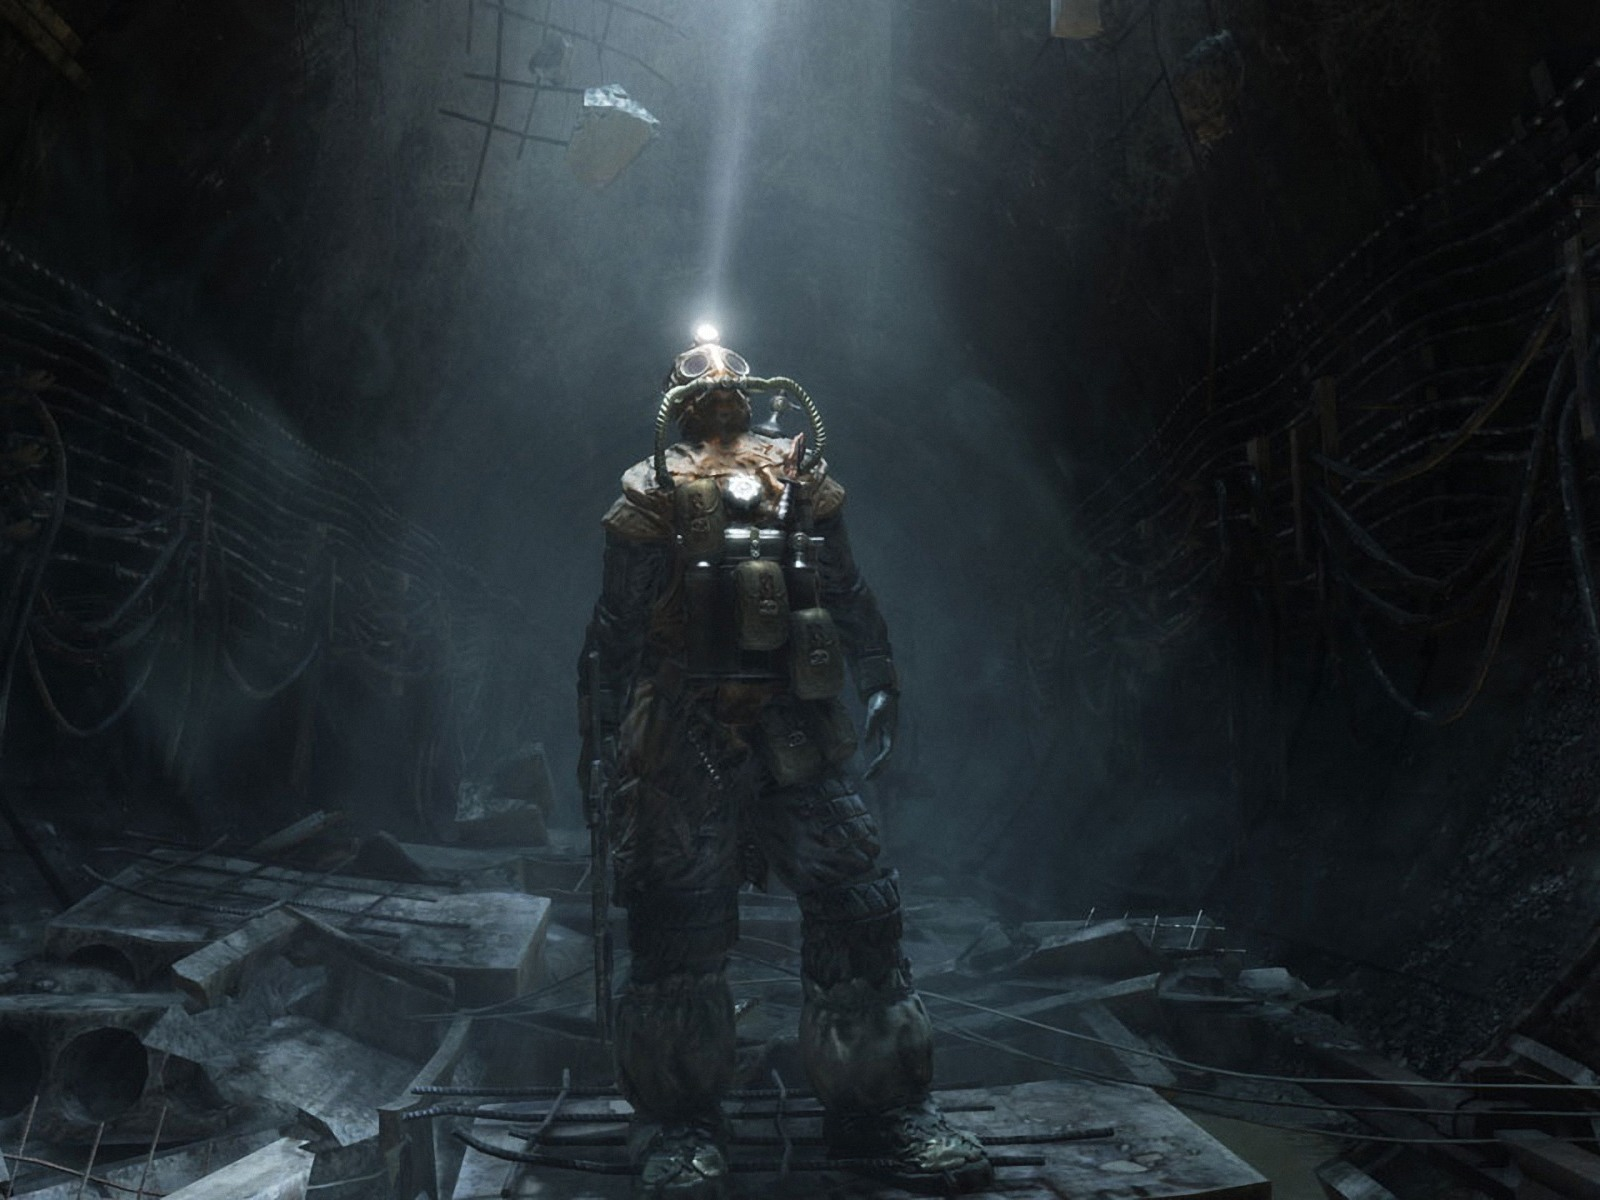 Wallpapers Hd Wallpapers Metro Last Light Game Metro Last Light